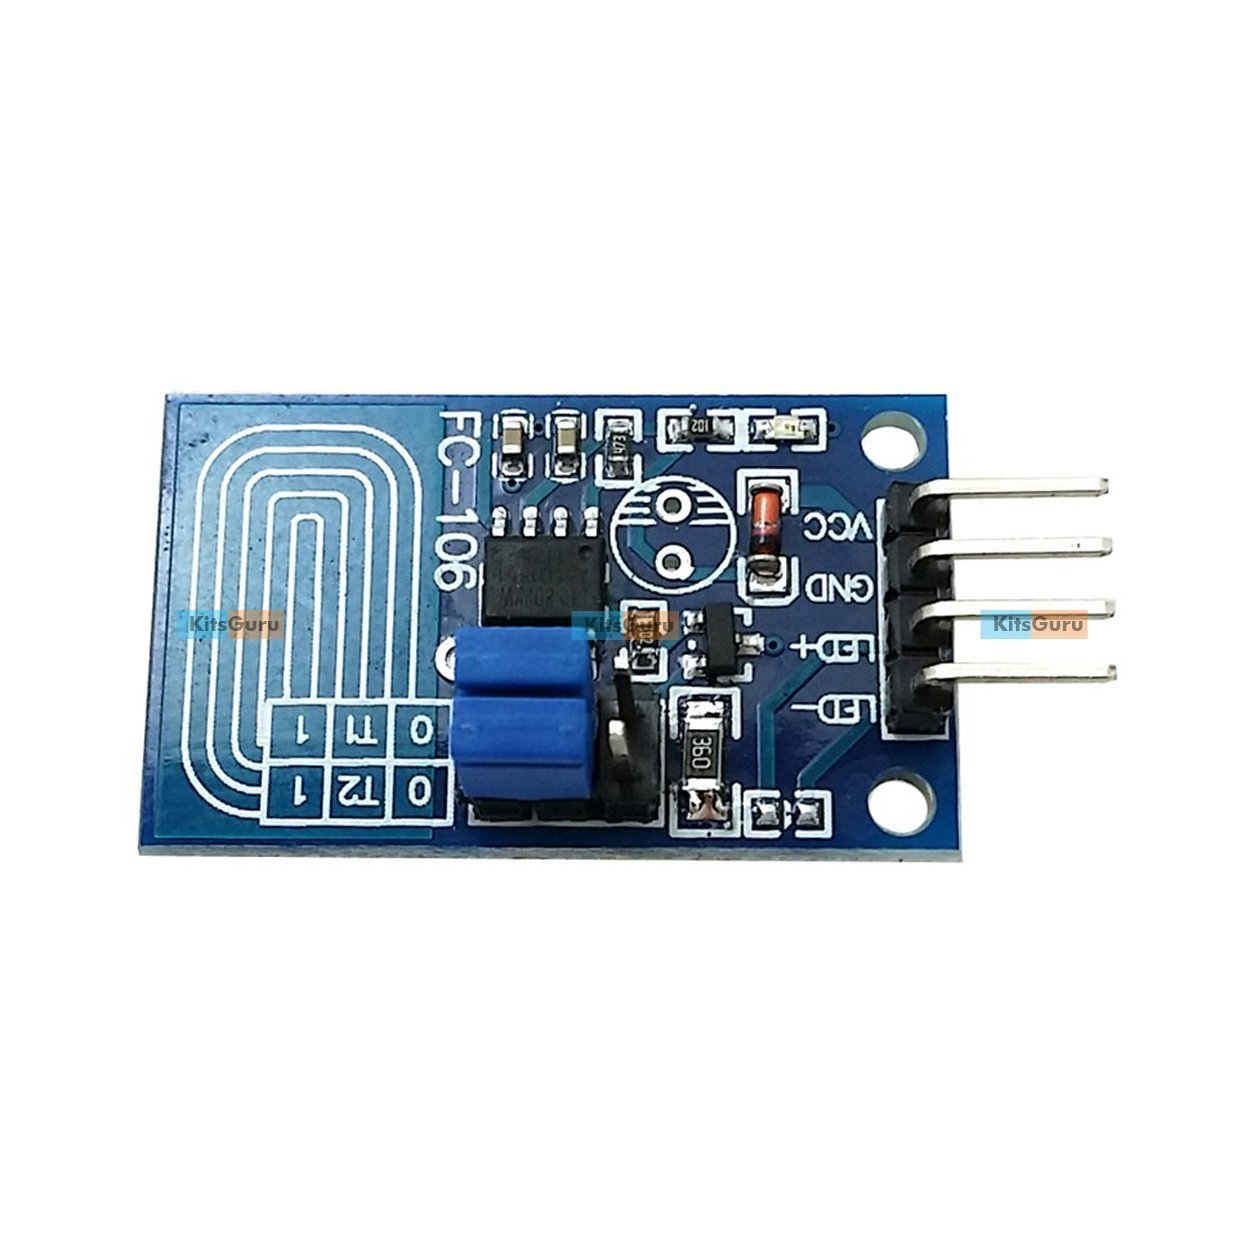 Capacitive Touch LED Dimmer PWM Control Switch Module - KG371 arduino in chennai